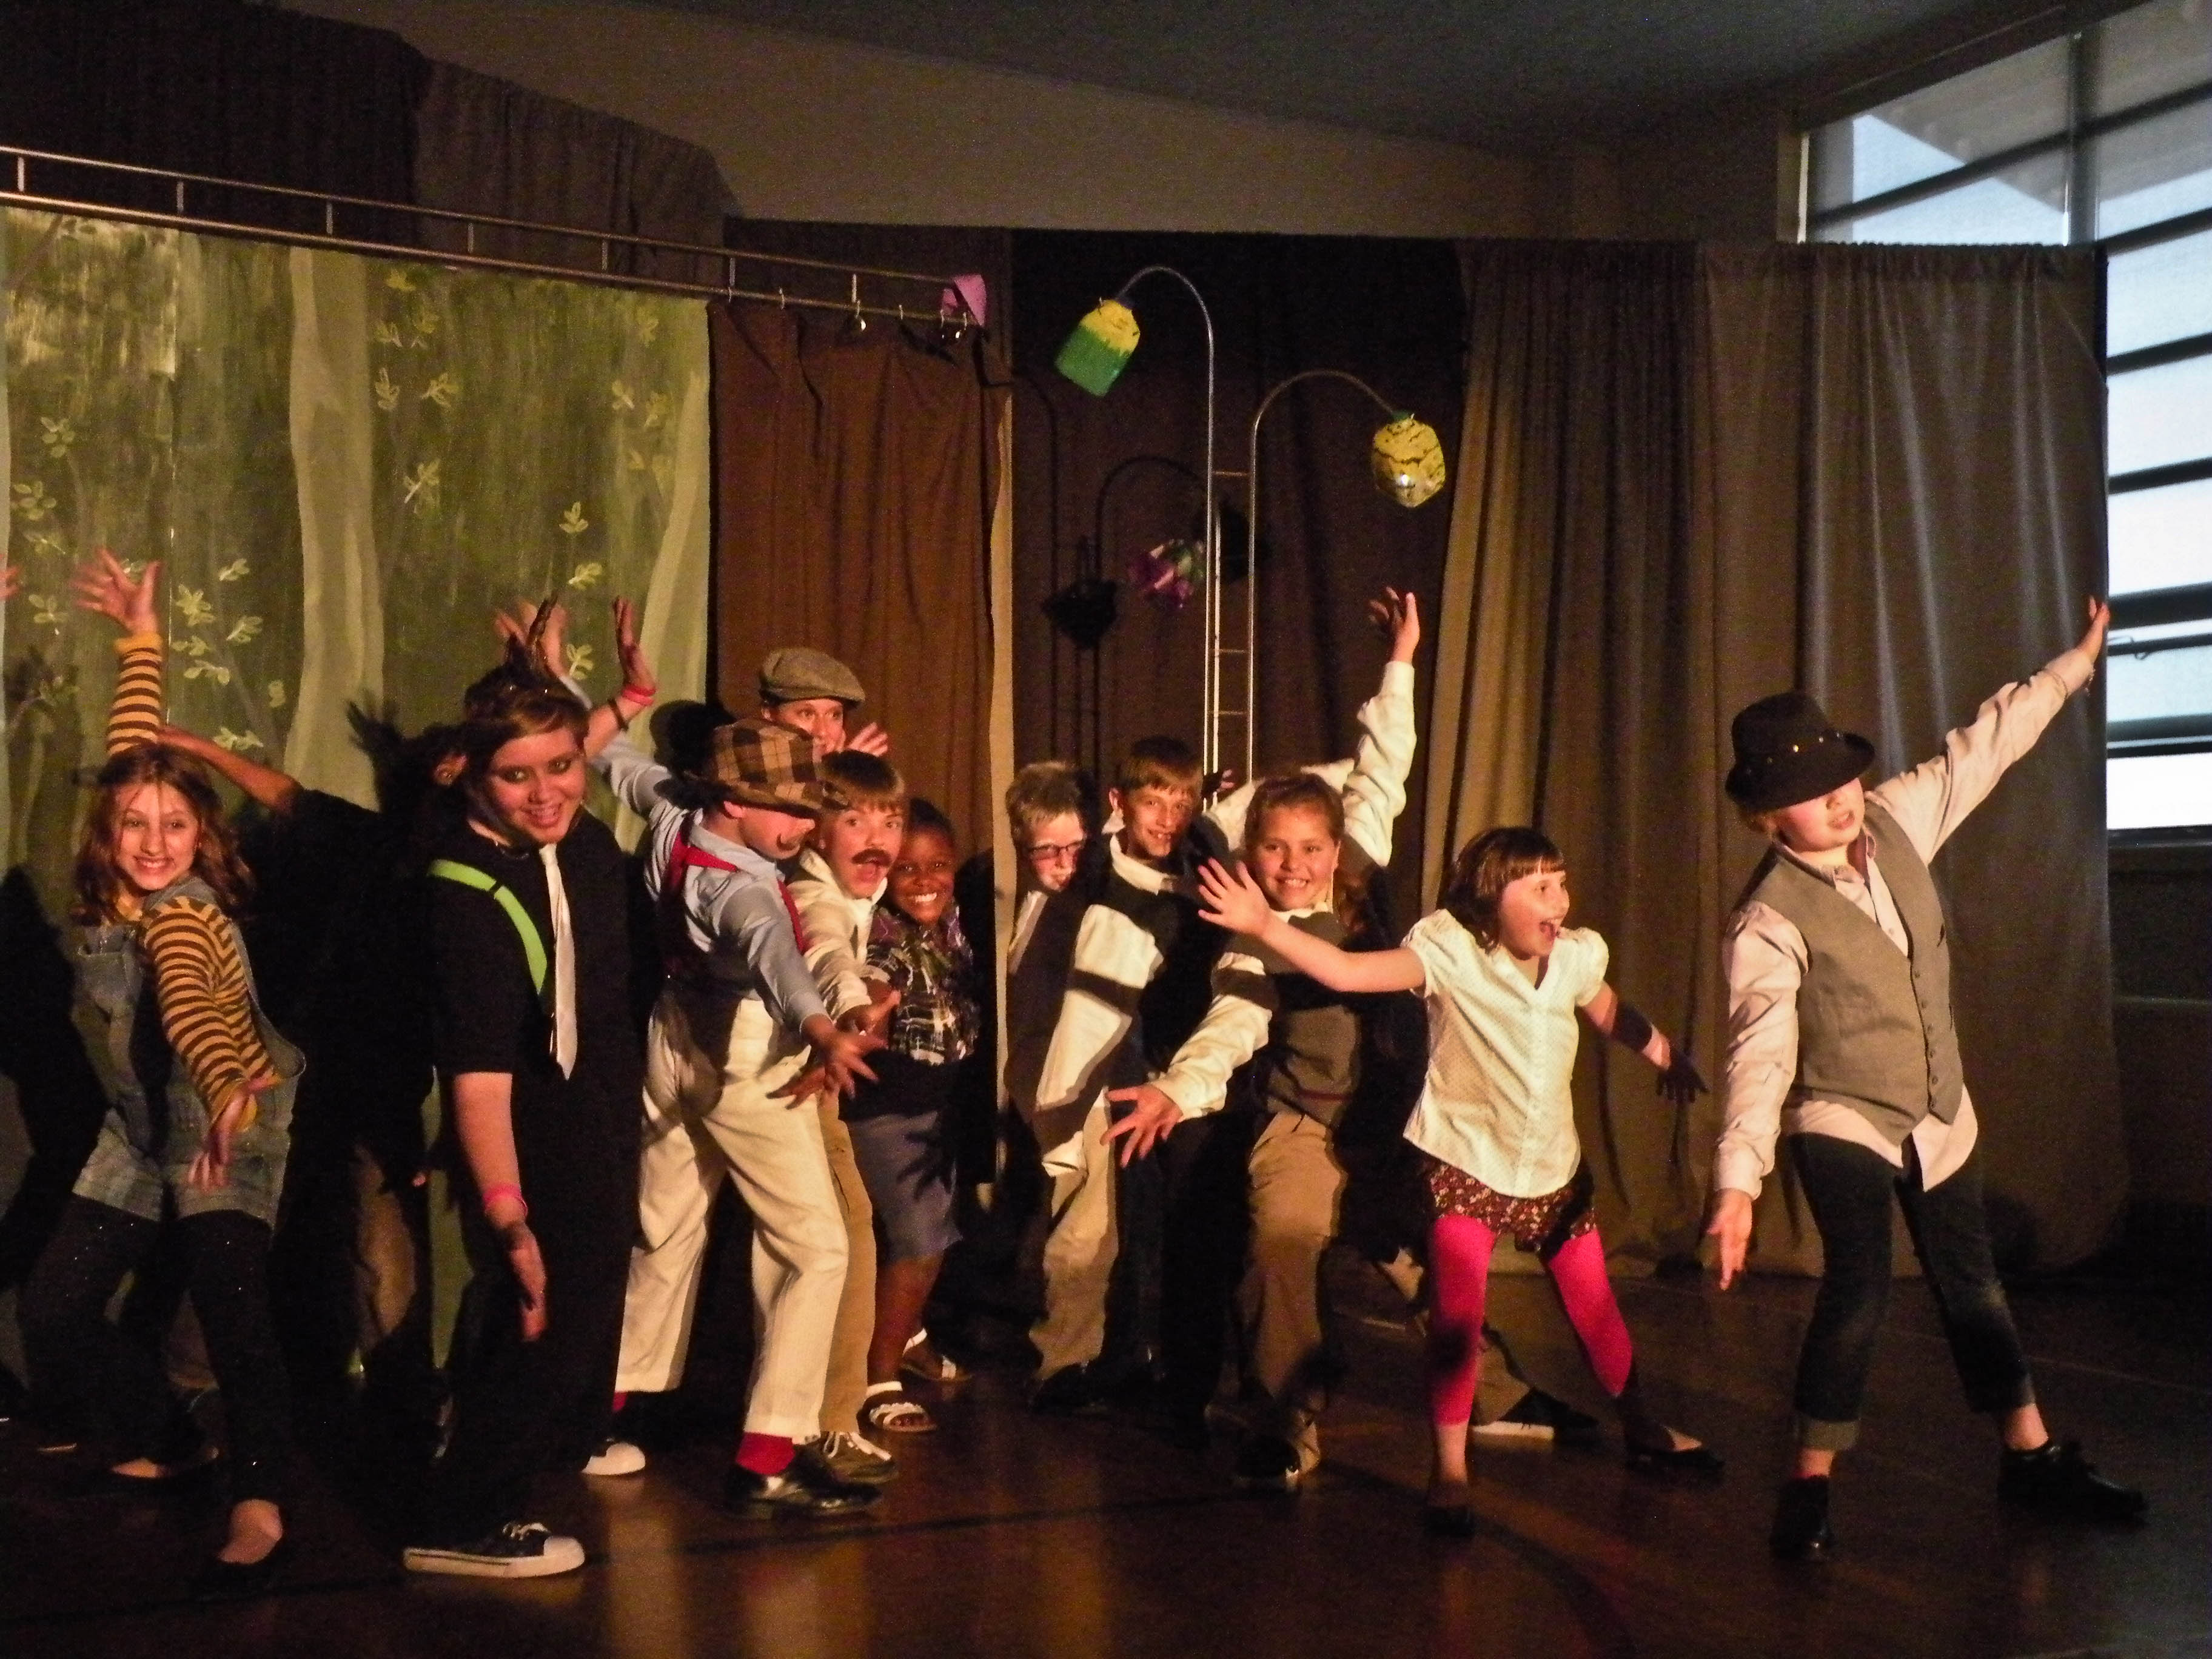 Group of 15 kids in full costume doing jazz hands